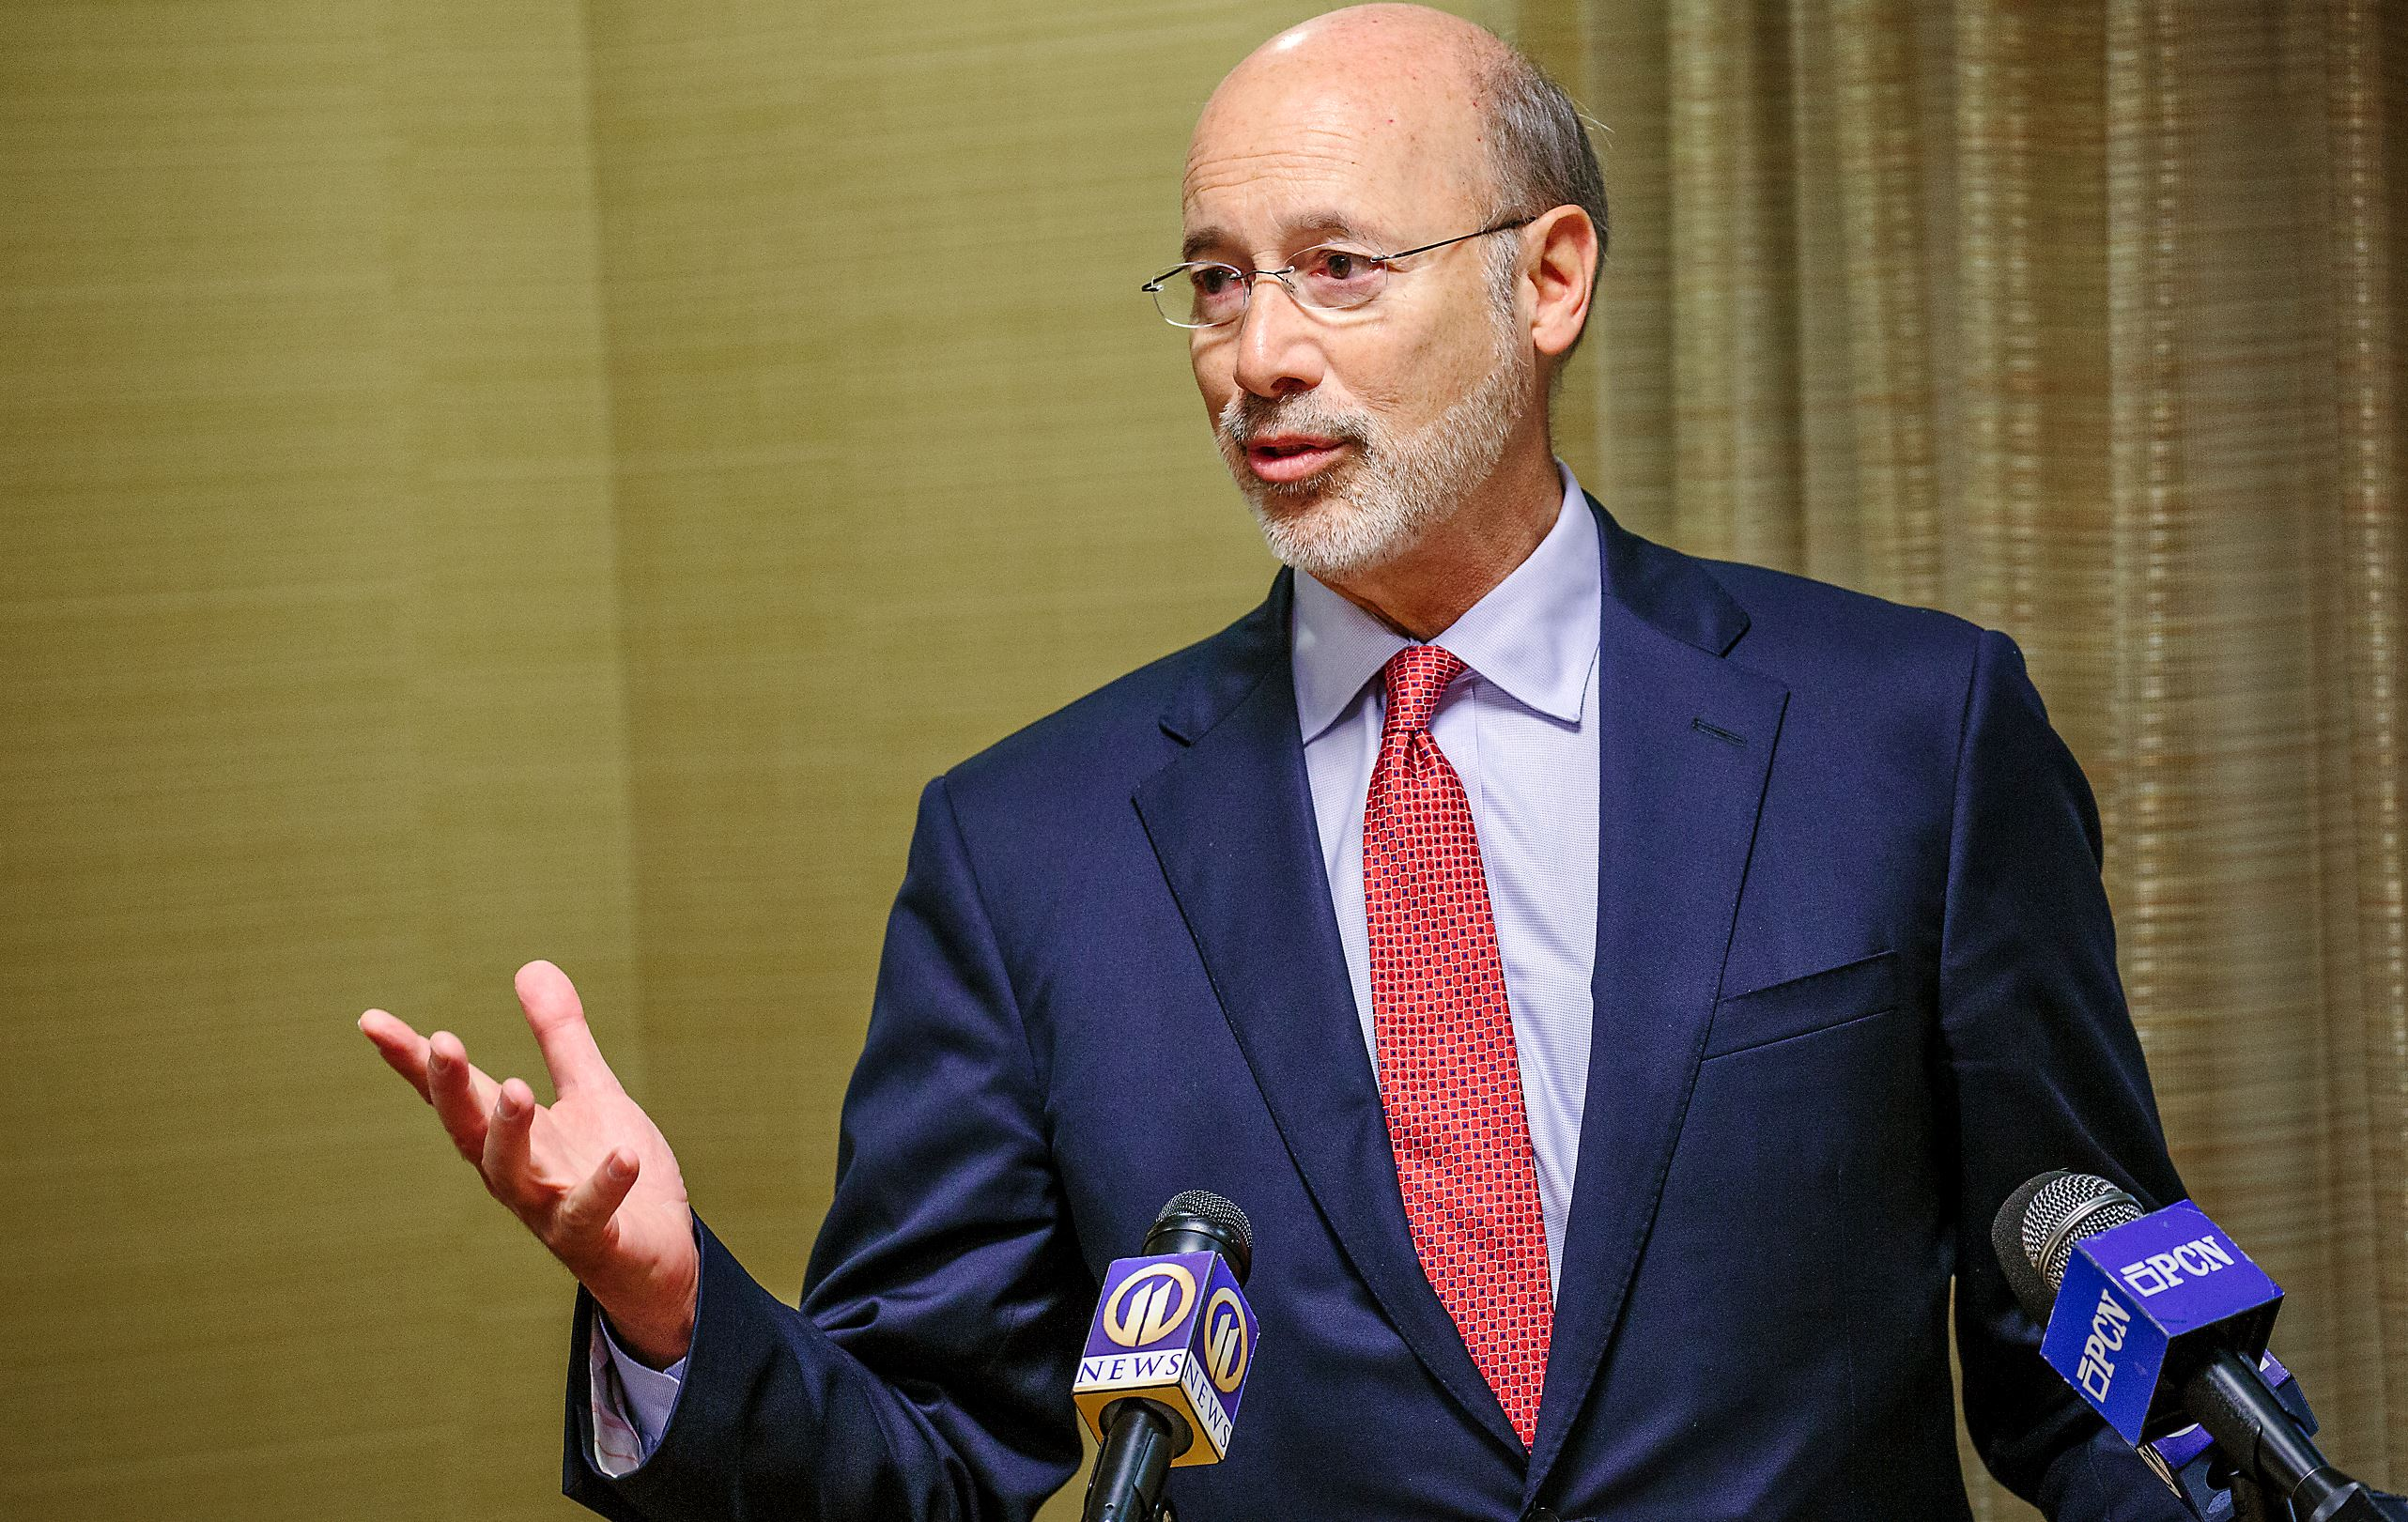 Reader Poll: Do You Approve of Wolf's Budget?